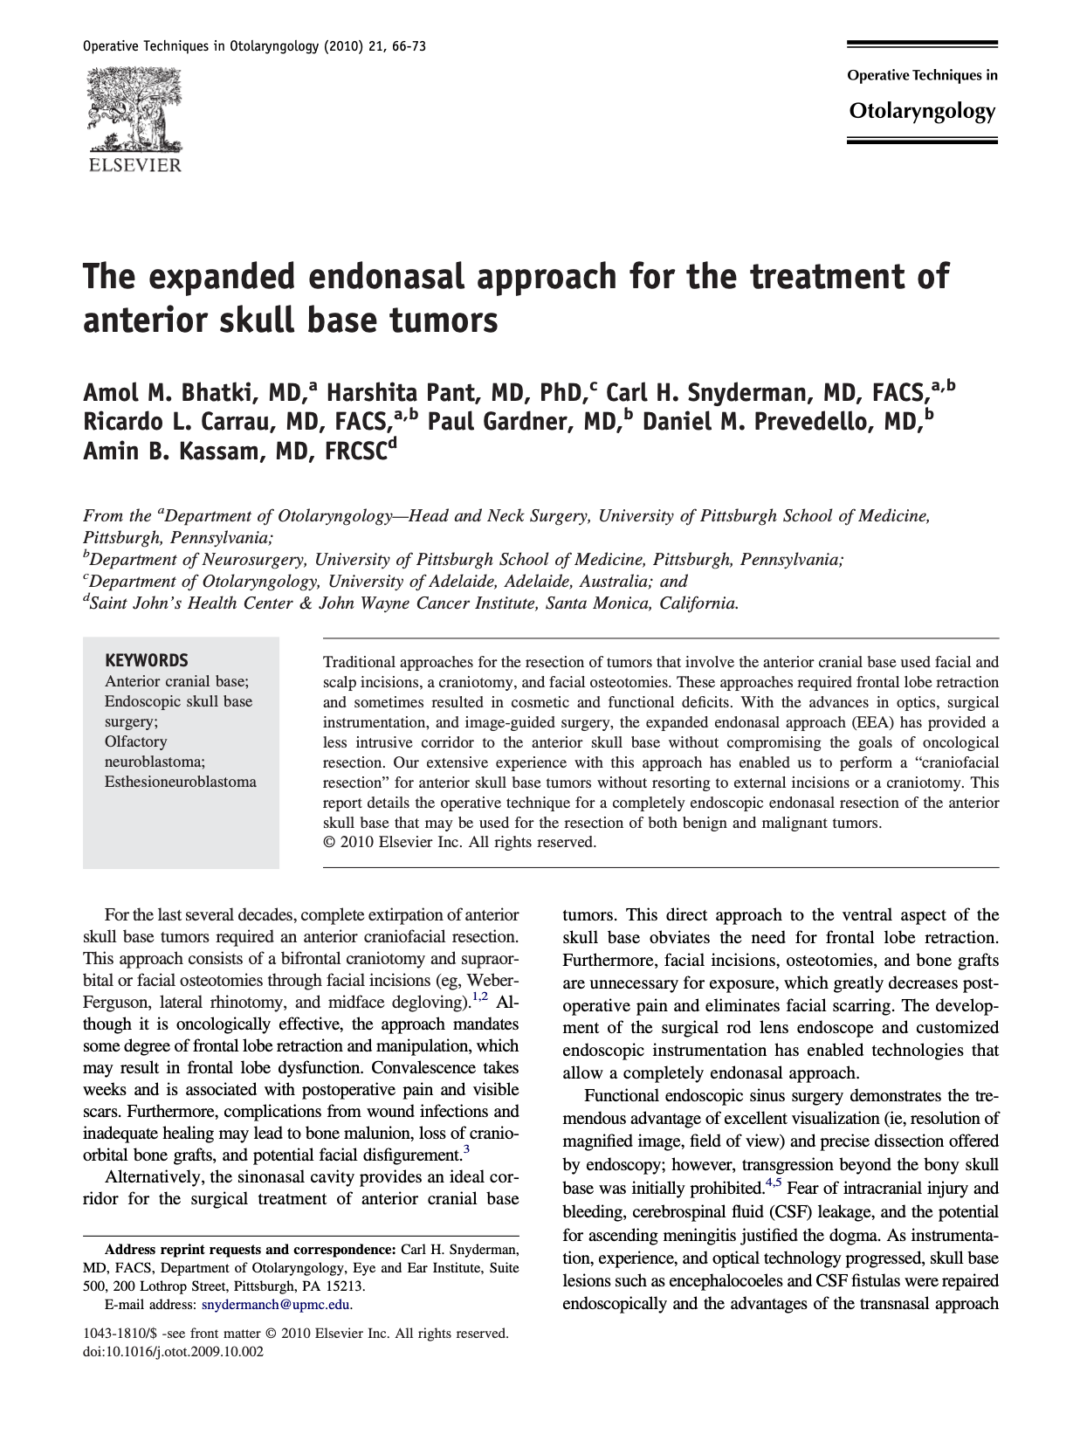 The expanded endonasal approach for the treatment of anterior skull base tumors